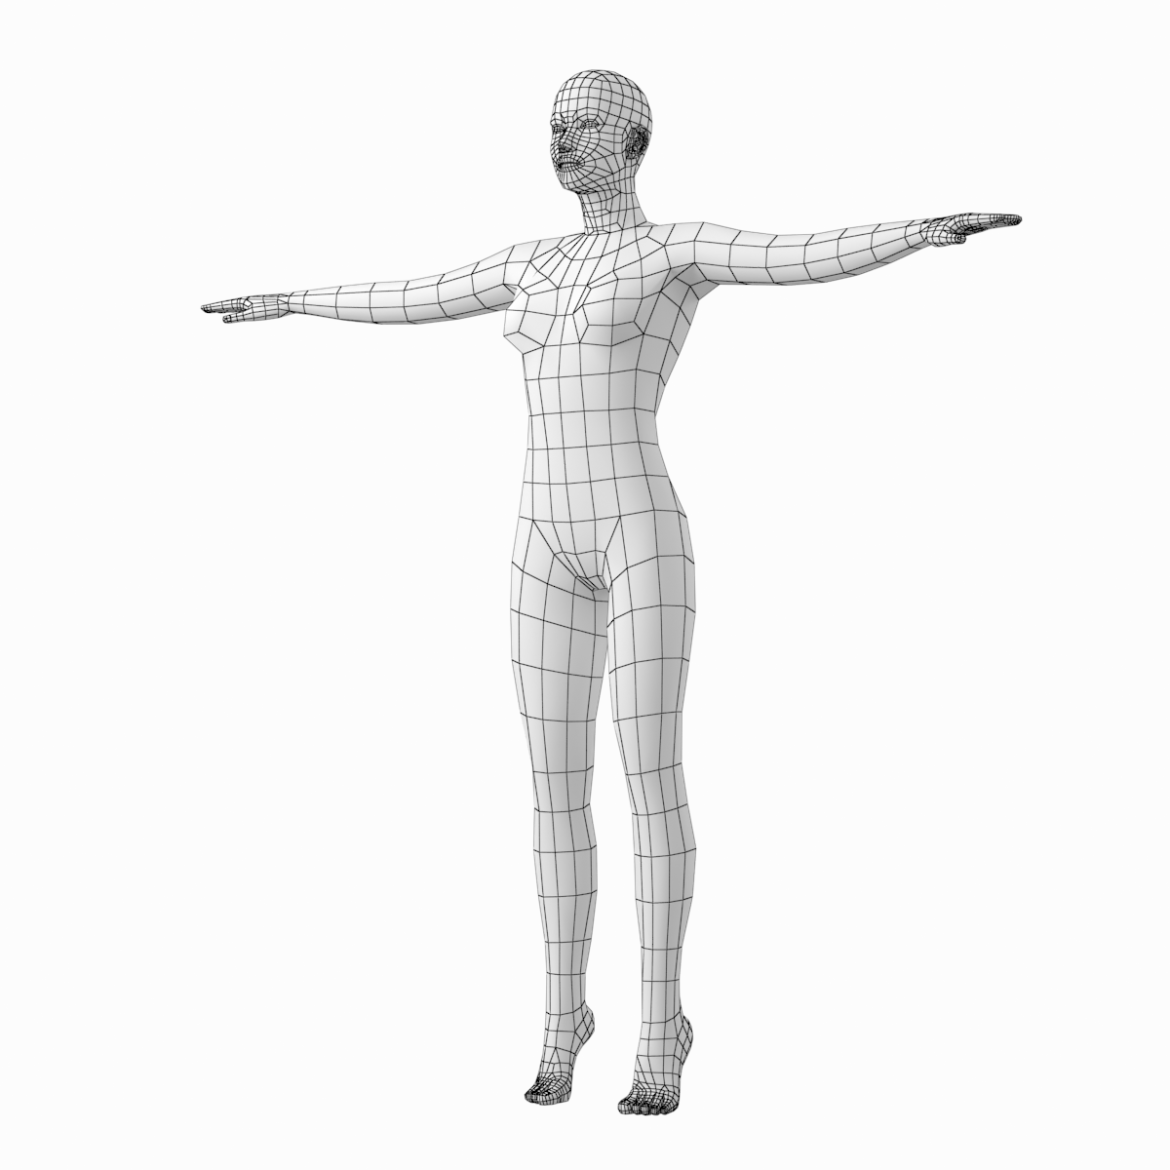 male and female base mesh in t-pose 3d model png stl obj ma mb max fbx dxf dwg dae c4d 3ds txt 305183